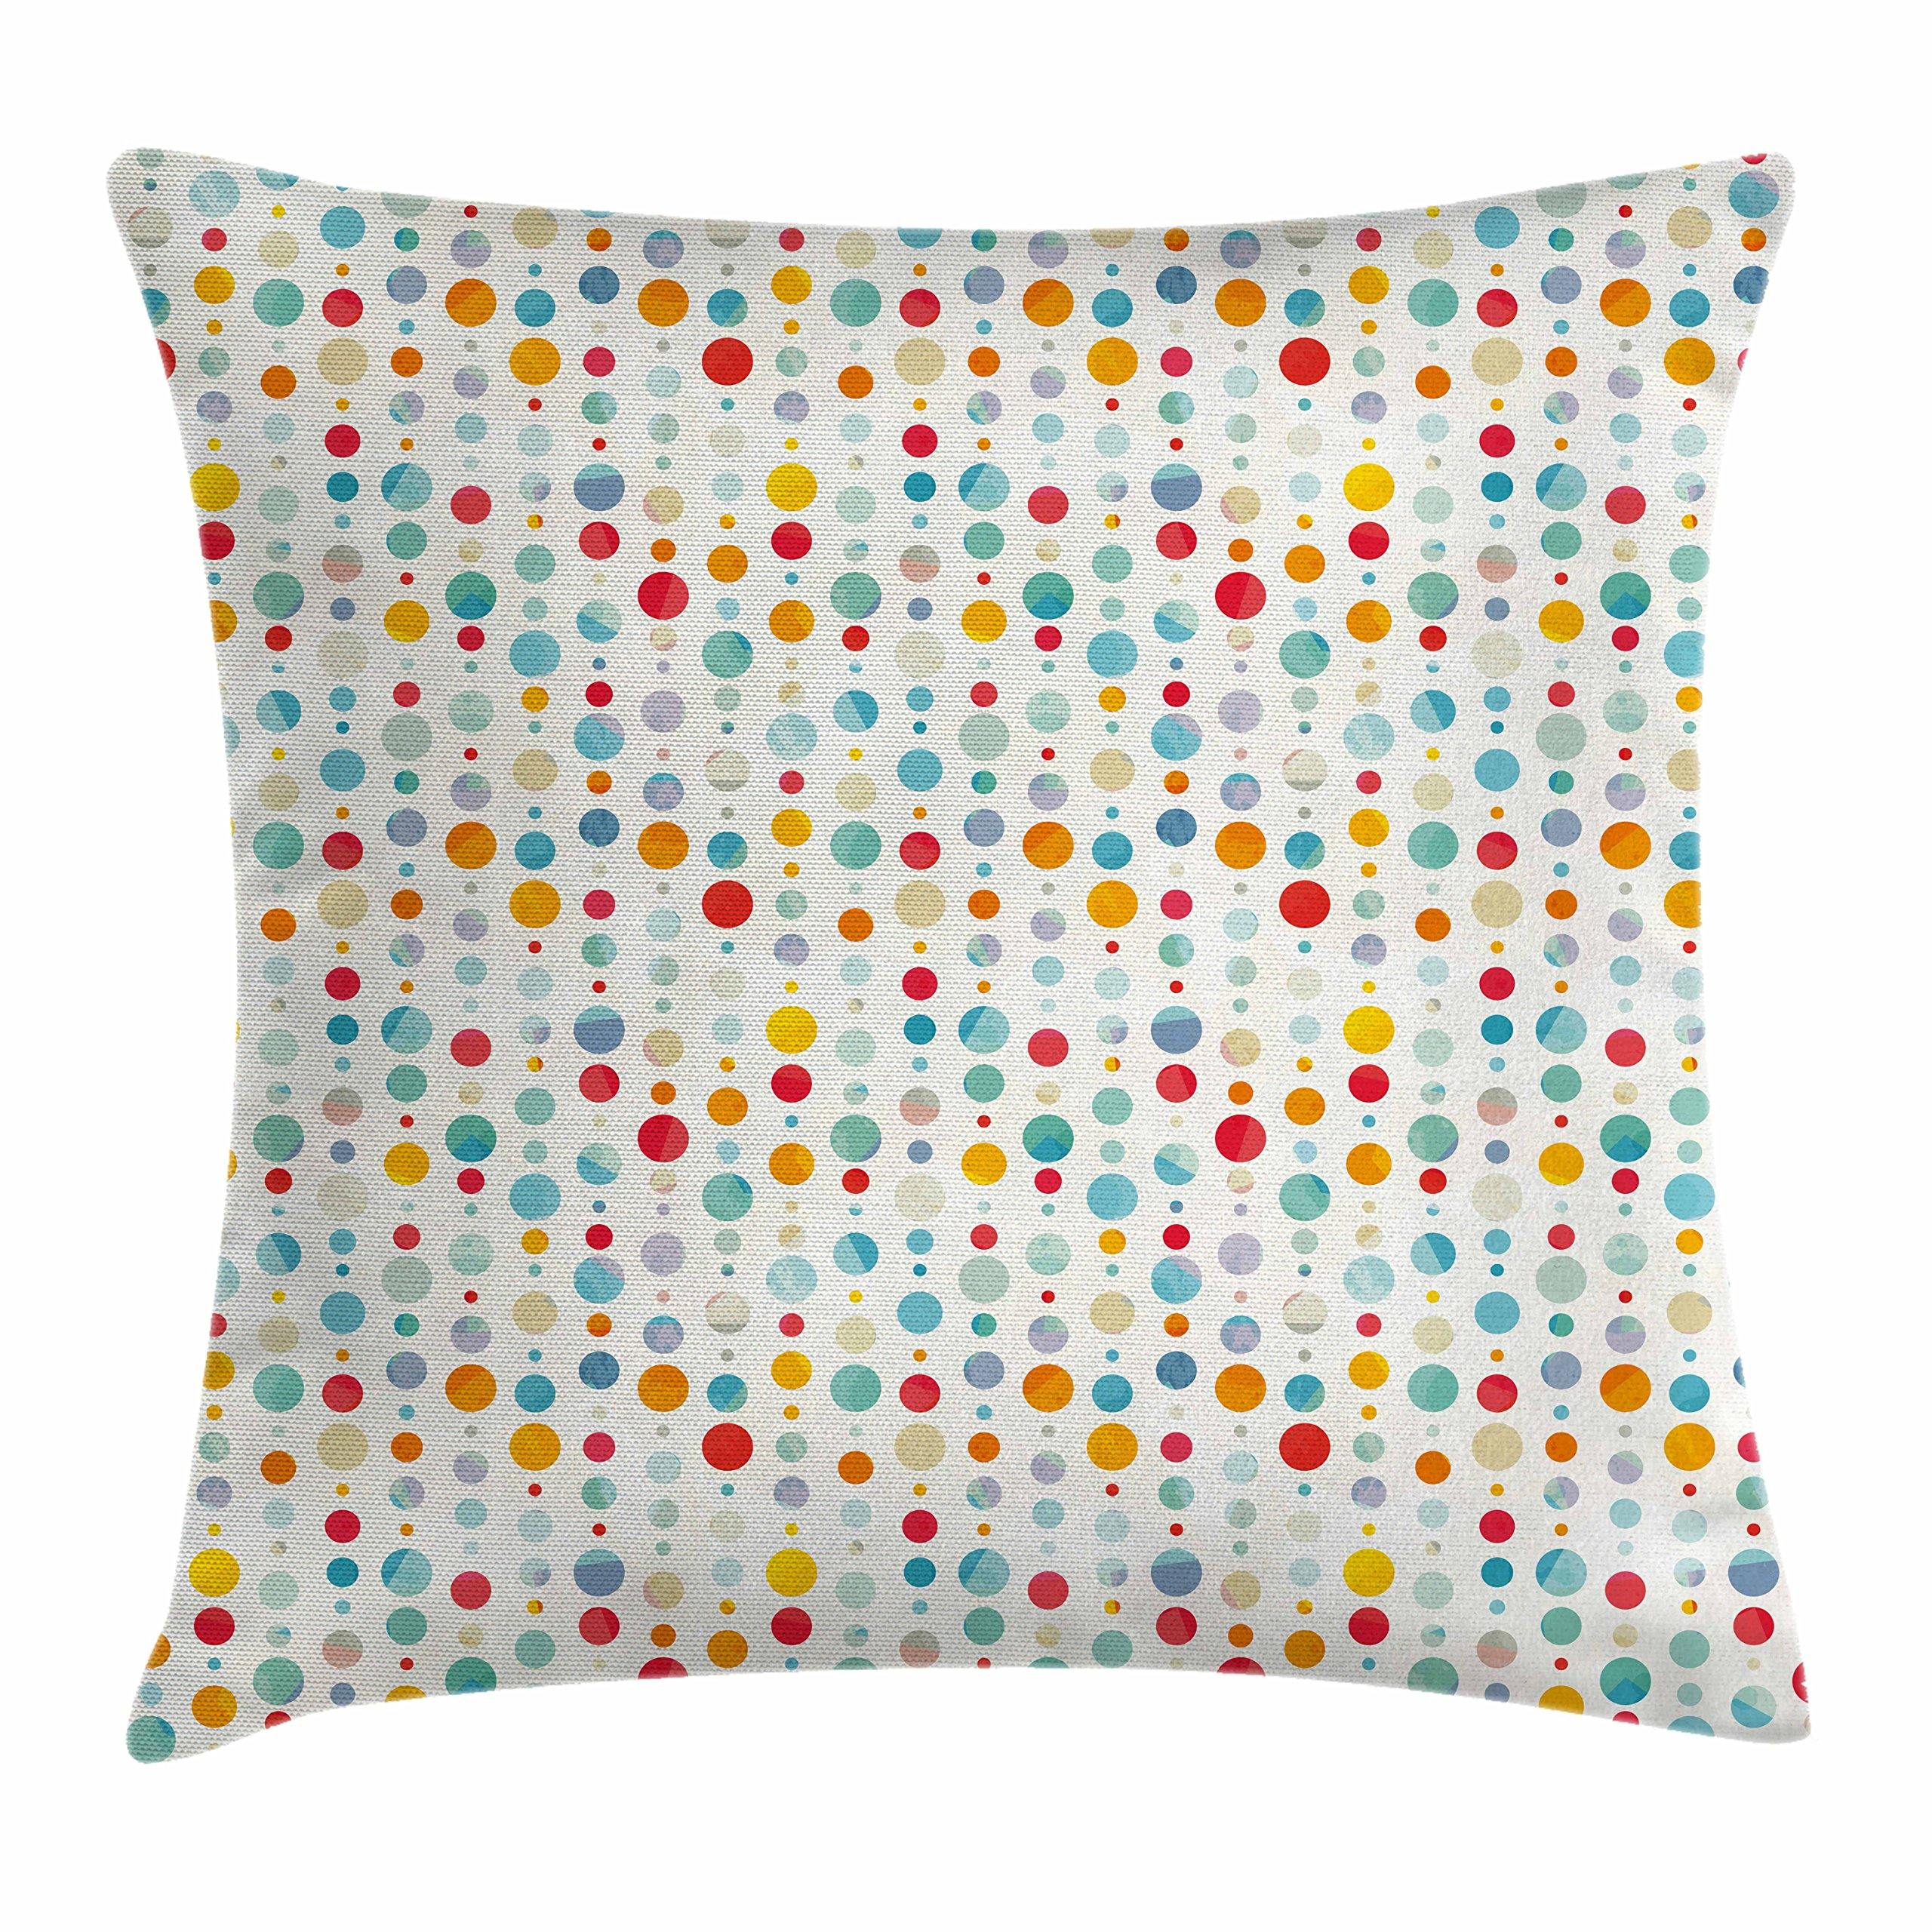 Ambesonne Abstract Throw Pillow Cushion Cover, Colorful Circular Large Dots Bubble Happy Hipster Kids Nursery Stylish Fun Print, Decorative Square Accent Pillow Case, 16 X 16 inches, Multicolor